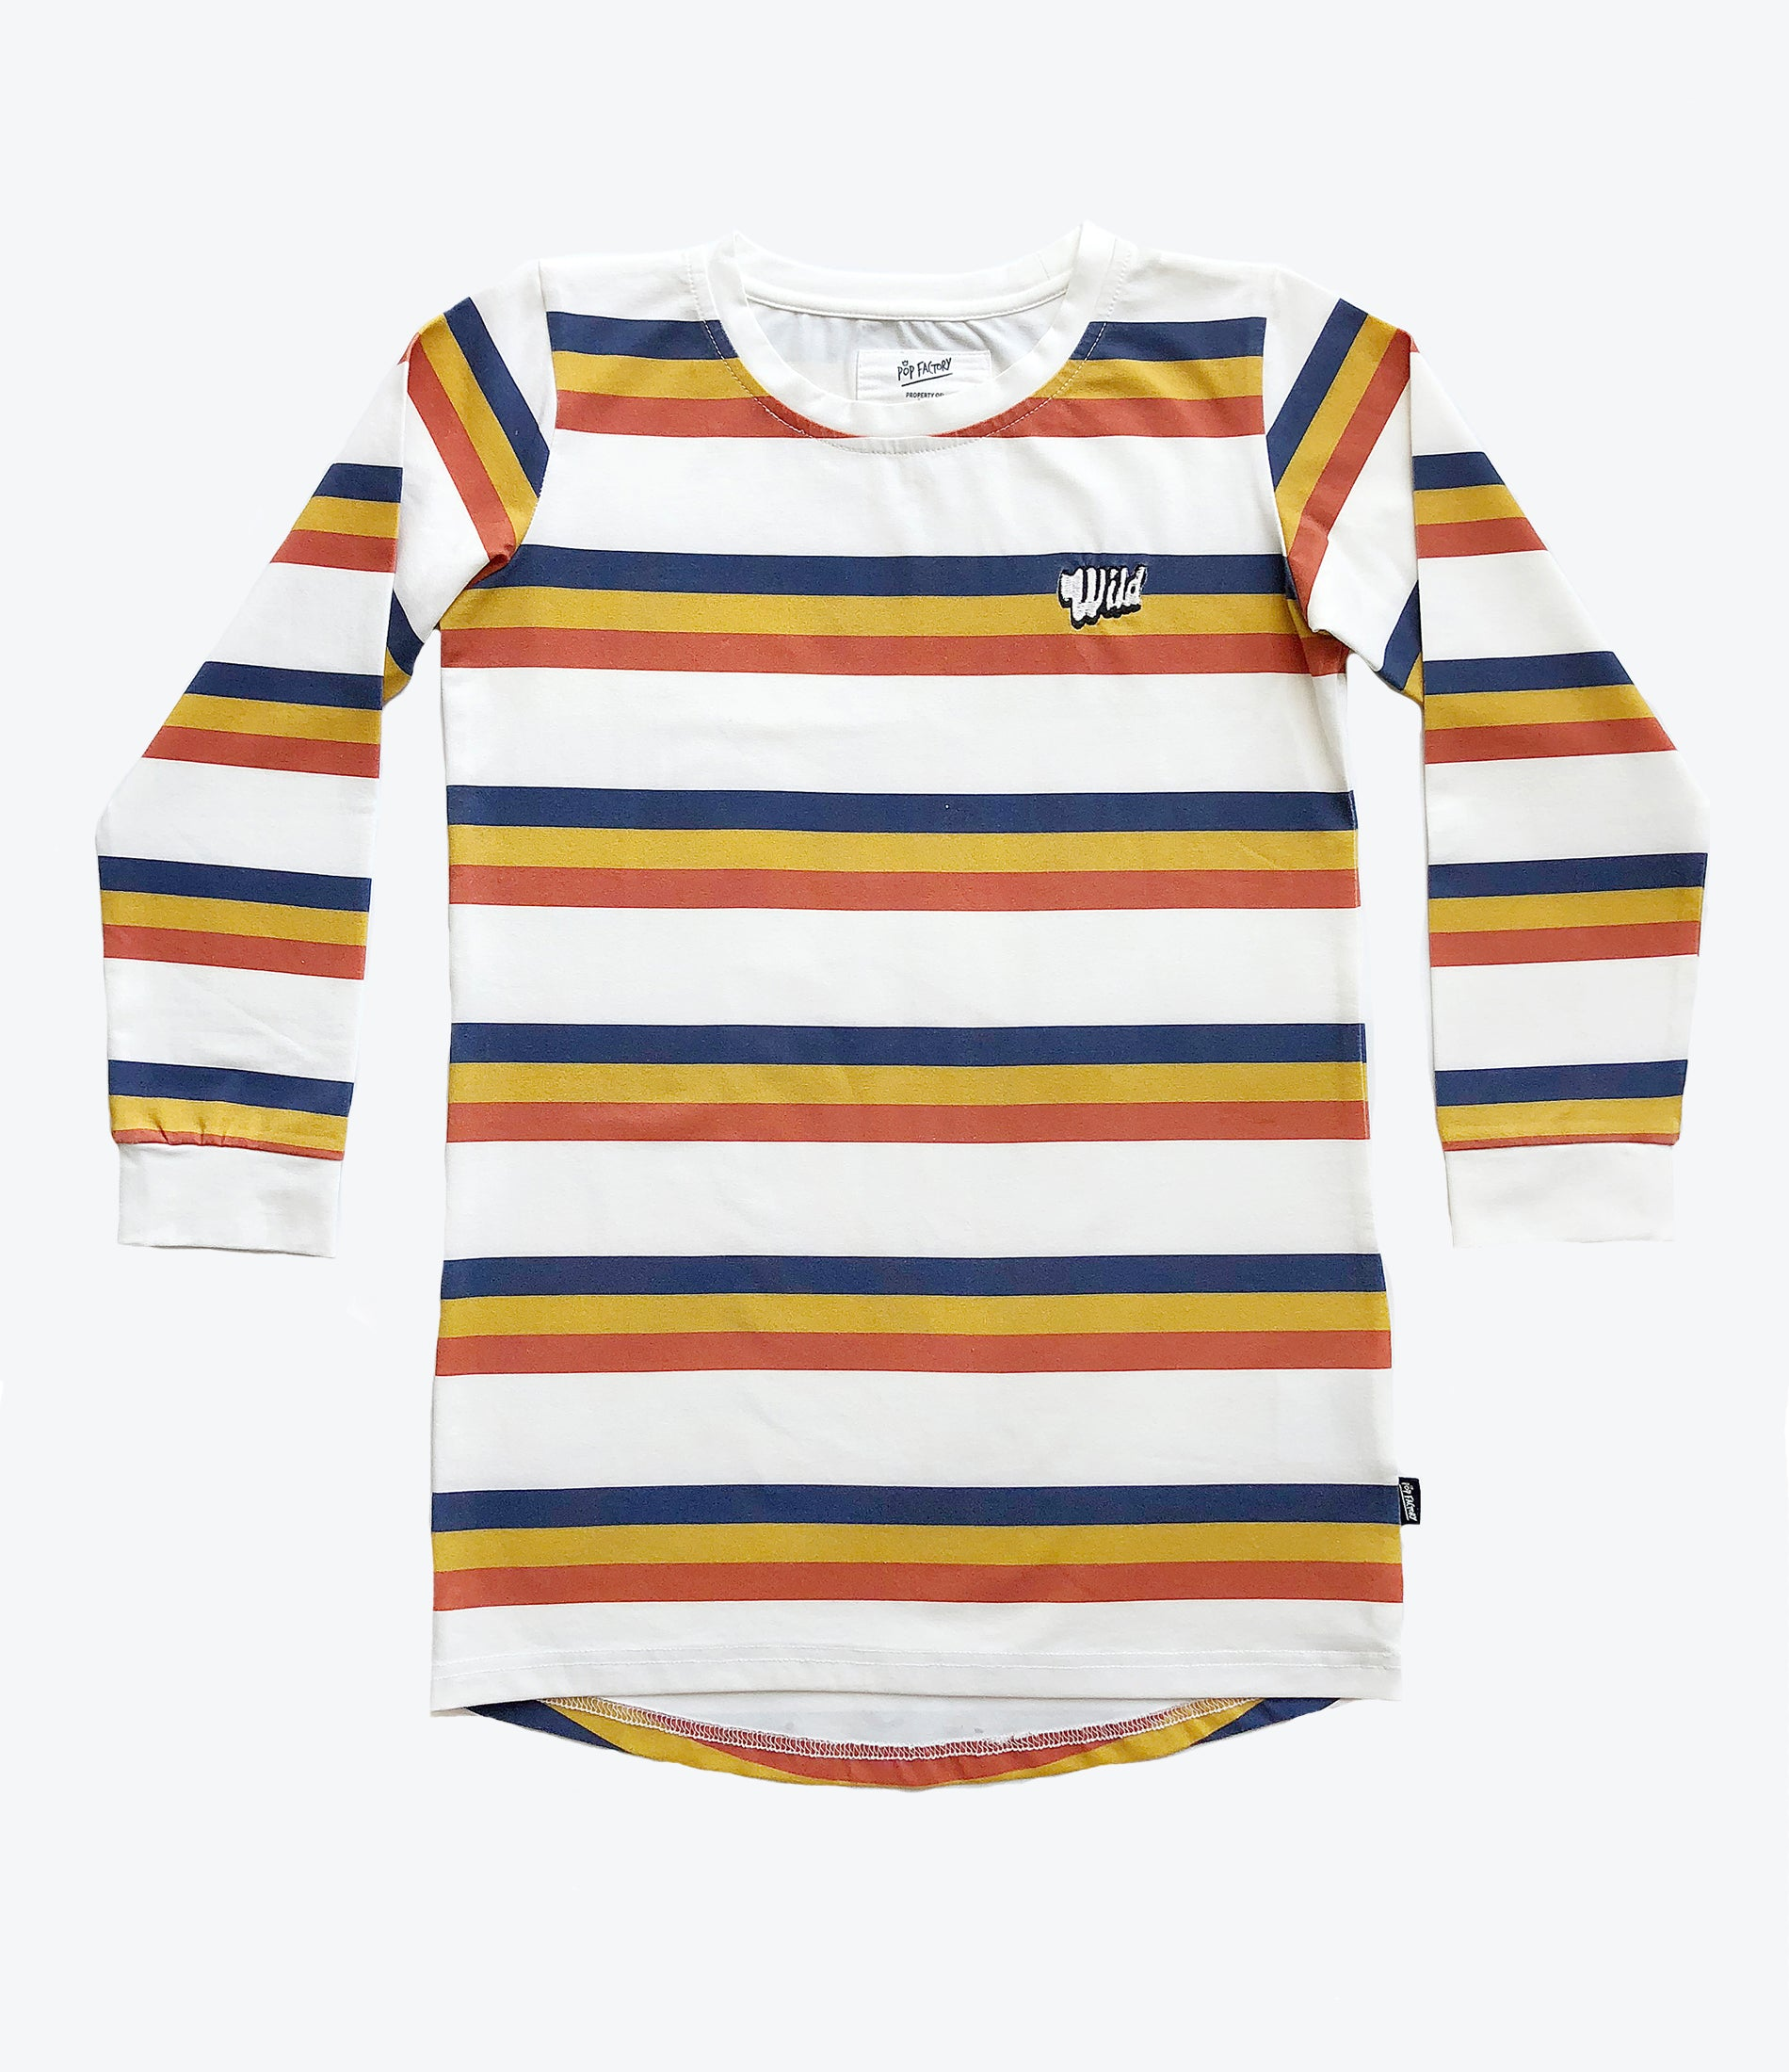 Pop Factory Shop wild stripes dress for the girls. Clothes for every day wear. Shop now at Made Mini Store. Free shipping NZ wide.